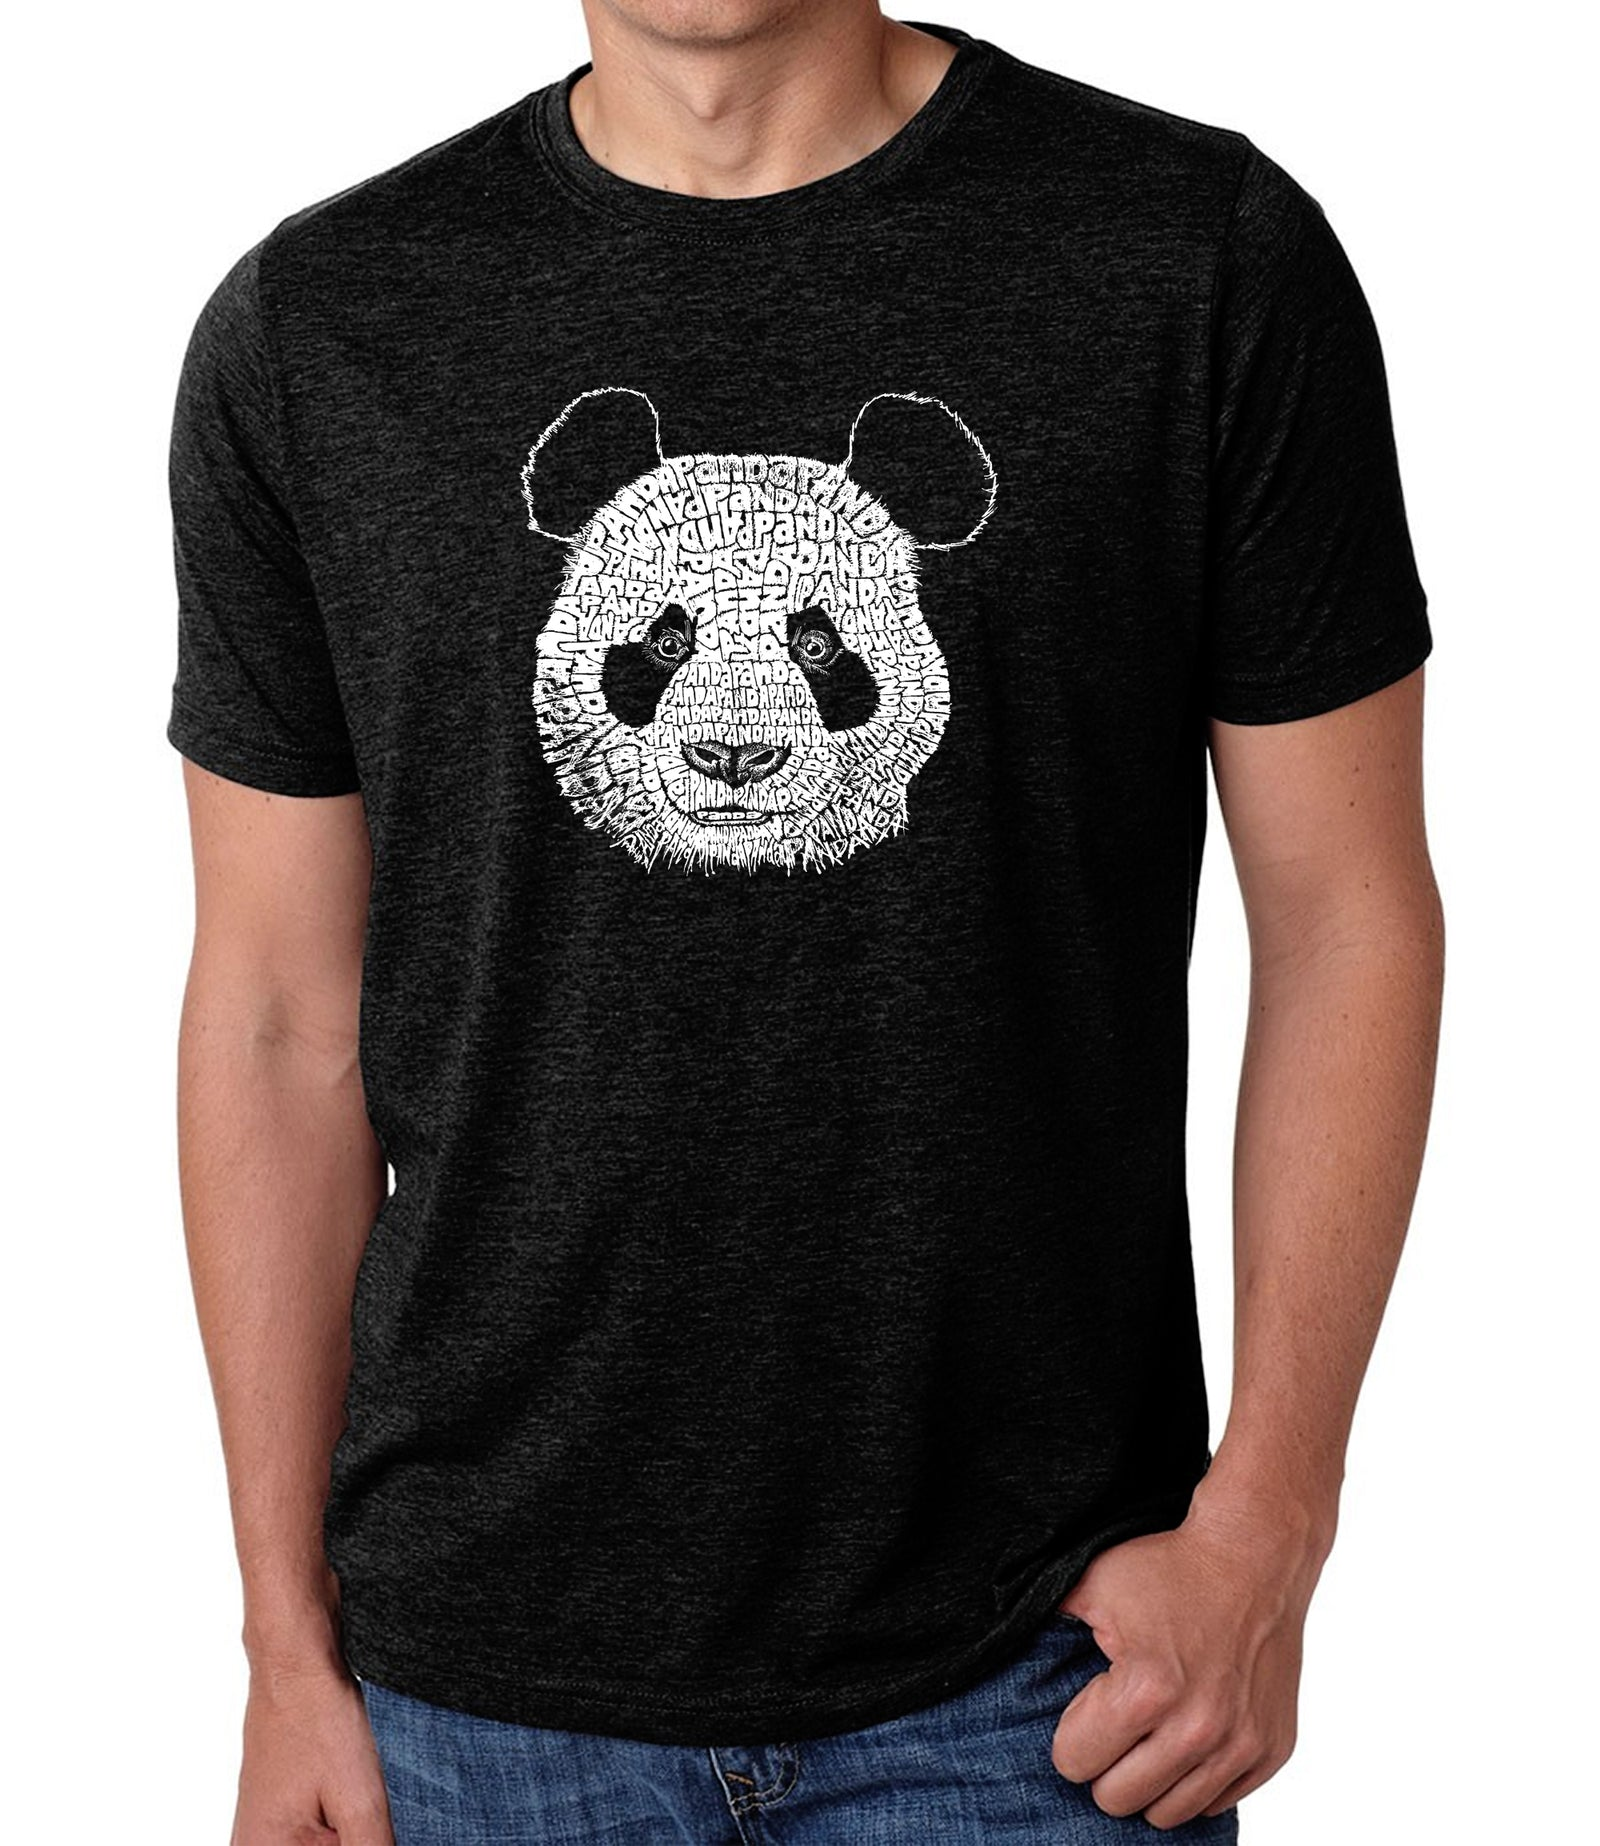 LA Pop Art Men's Premium Blend Word Art T-shirt - Panda